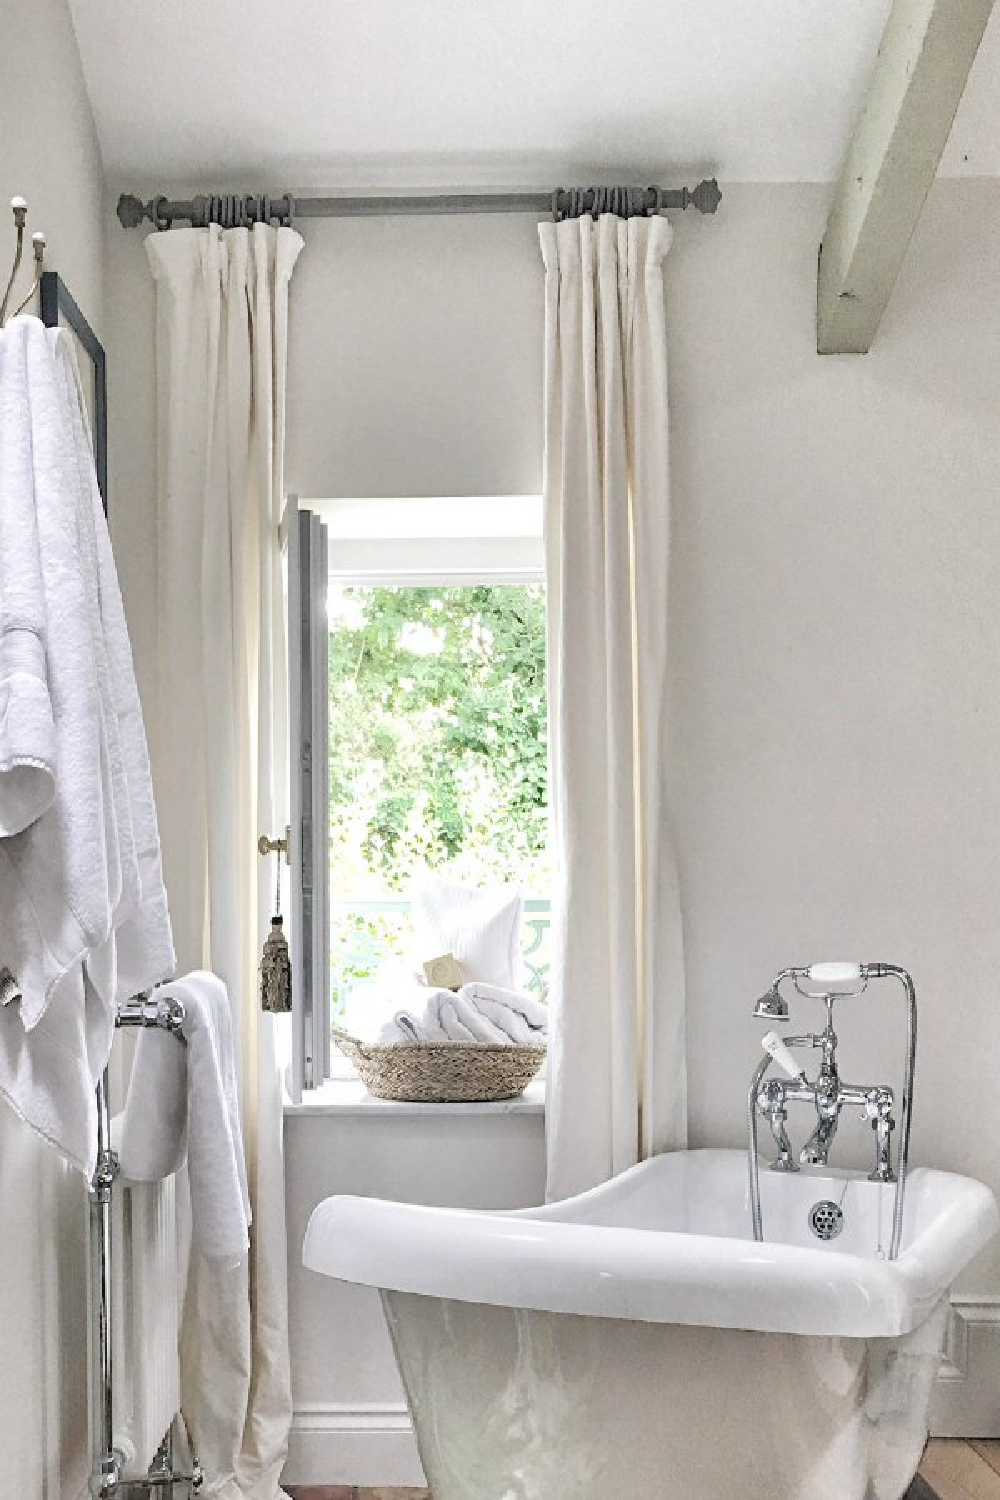 Romantic bathroom in France. Beautiful French farmhouse design inspiration, house tour, French homewares and market baskets from Vivi et Margot. Photos by Charlotte Reiss. Come be inspired on Hello Lovely and learn the paint colors used in these beautiful authentic French country interiors. #frenchfarmhouse #bathroom #frenchcountry #interiordesign  #vivietmargot